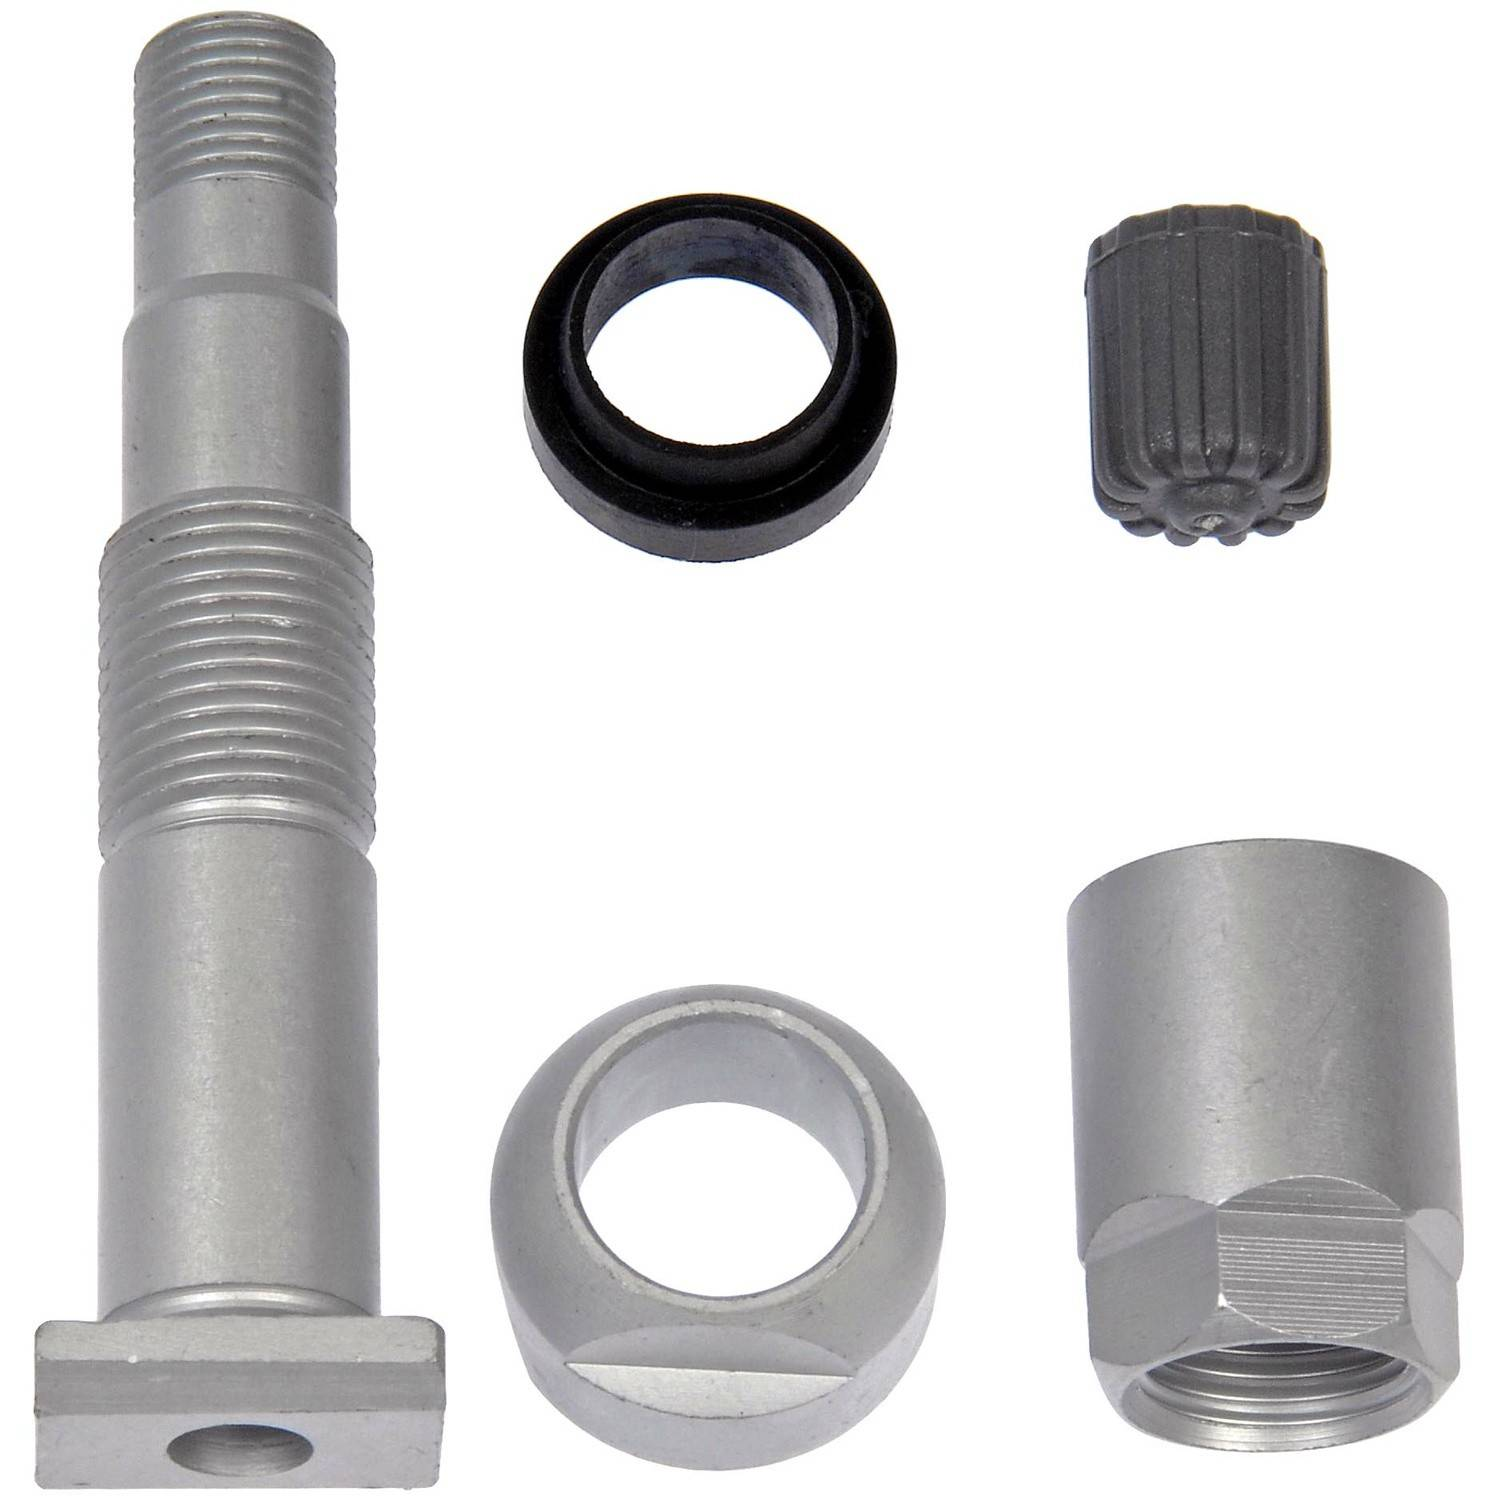 DORMAN OE SOLUTIONS - TPMS Valve Kit - DRE 609-142